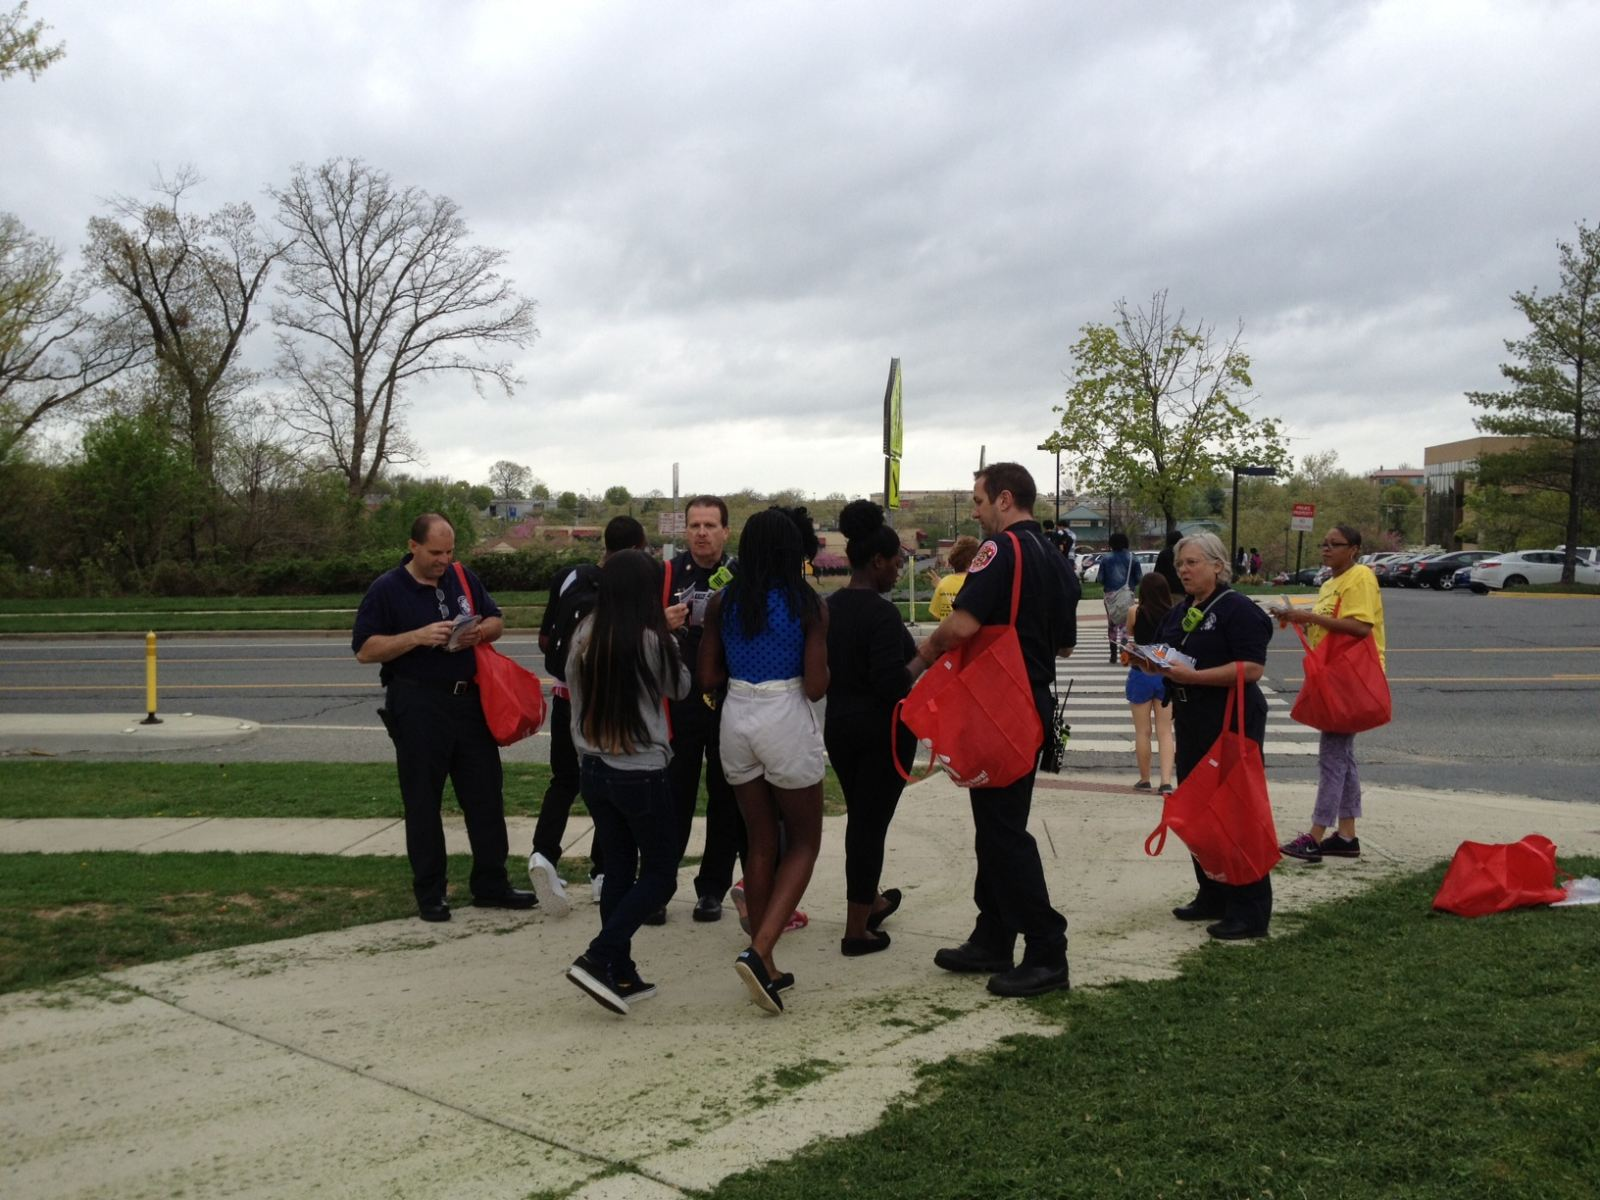 Montgomery County Fire and Rescue Station 22 Distributing Reflective Materials to Students at Seneca Valley High School